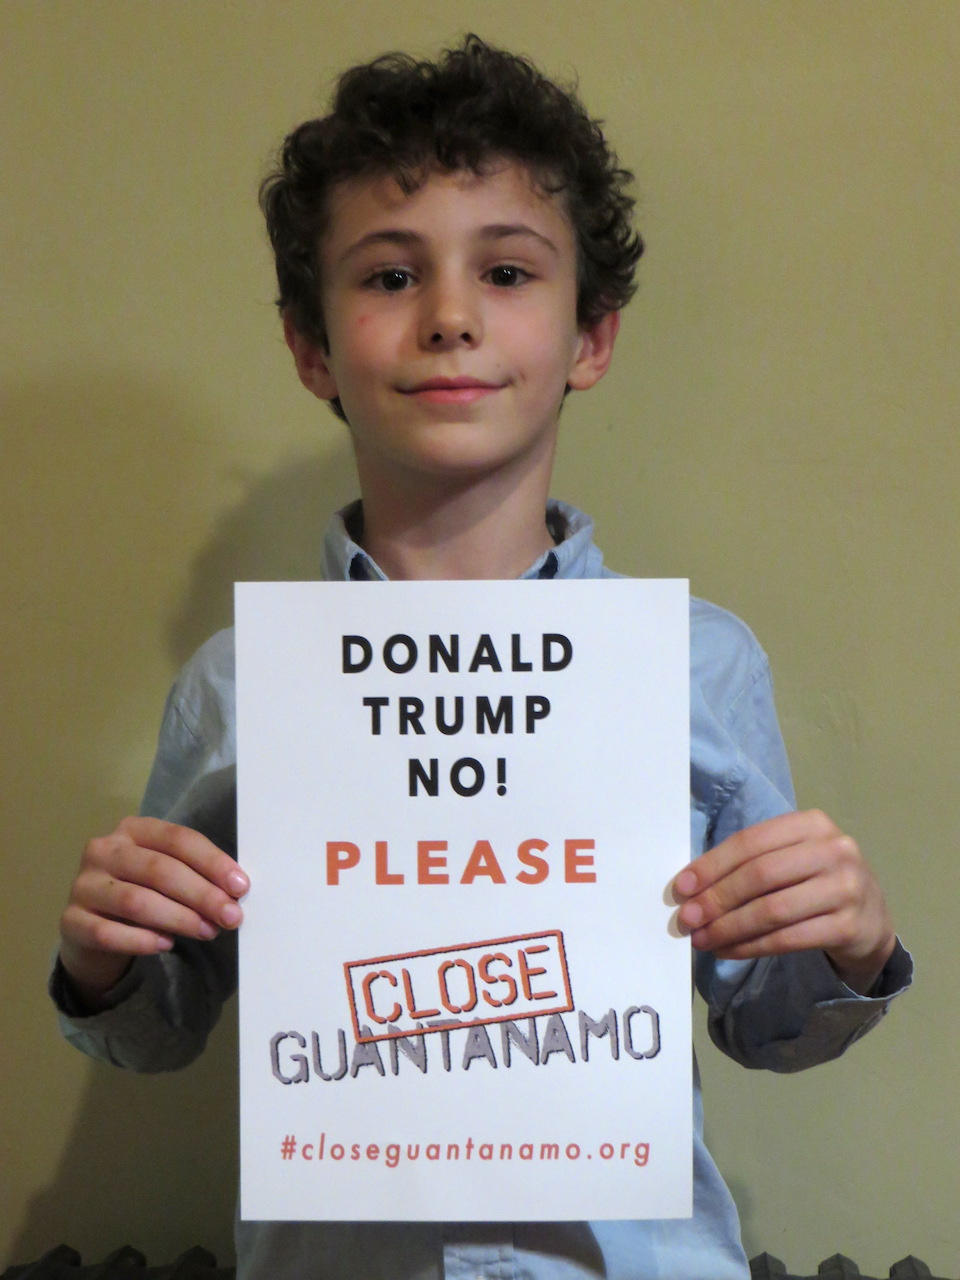 Arlo Varon, the son of Jeremy Varon of Witness Against Torture, calls on Donald Trump to close Guantanamo.